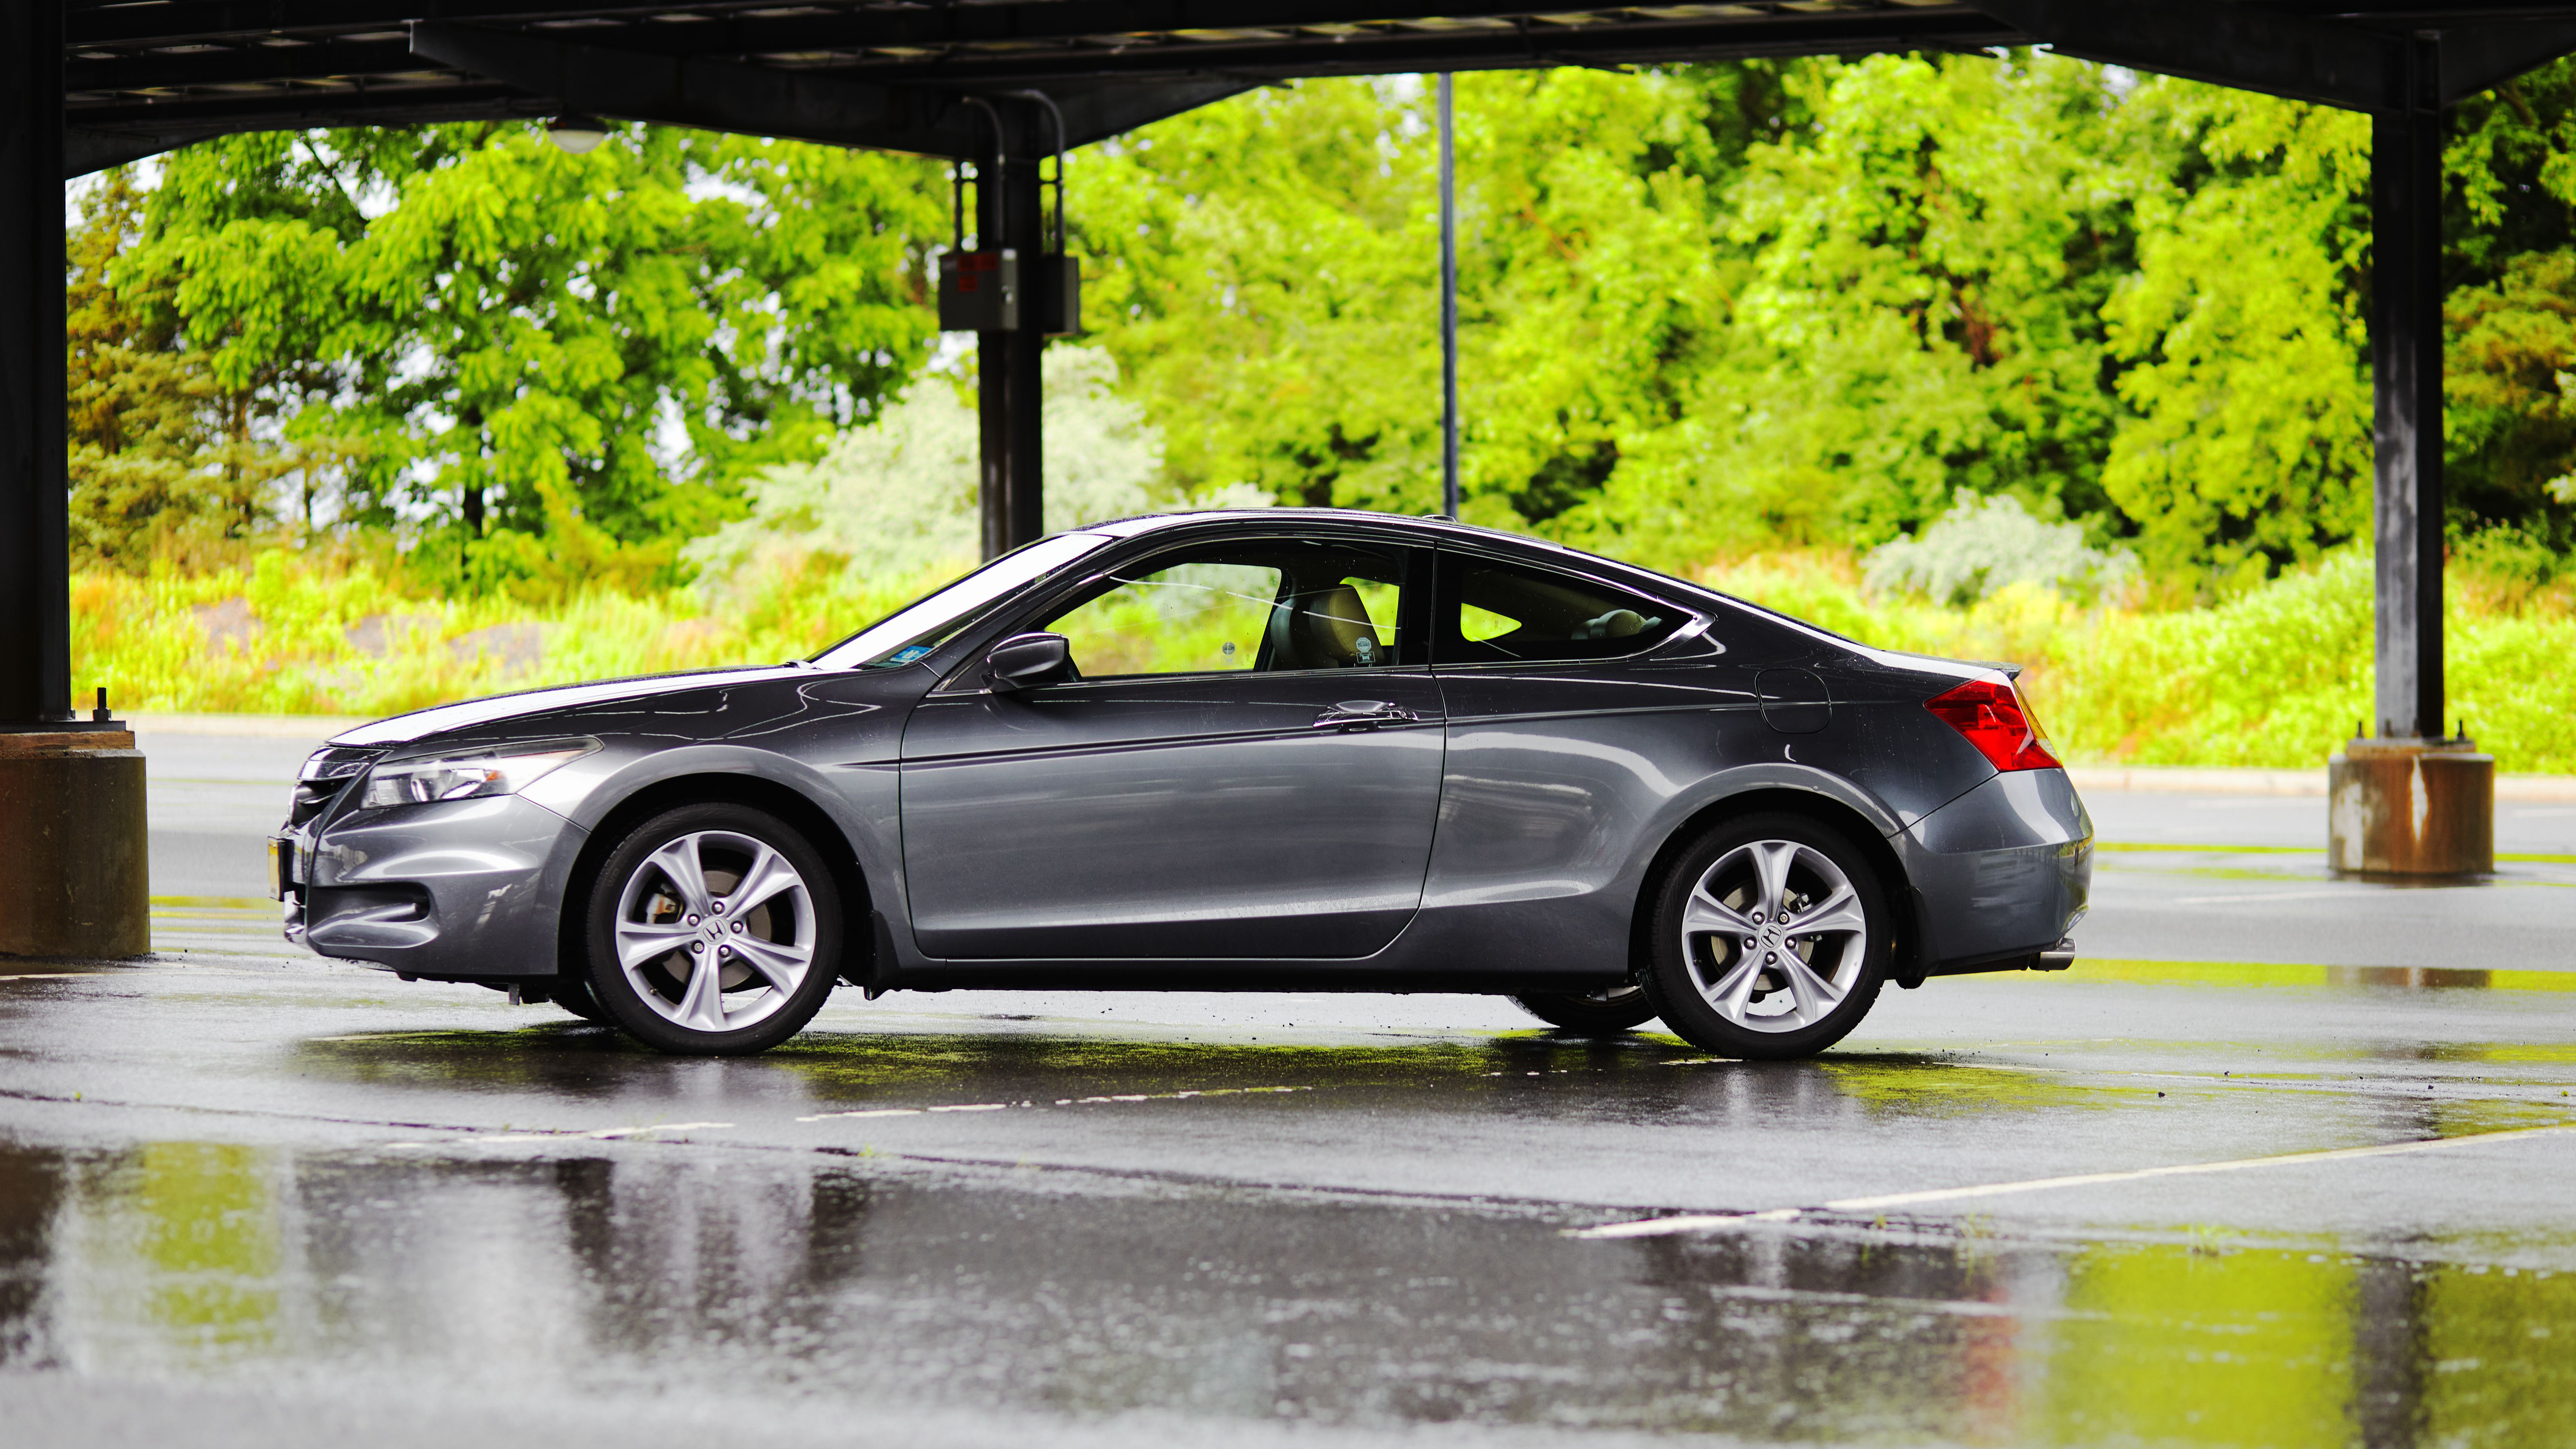 2012 Honda Accord coupe, in parking lot on rainy day.